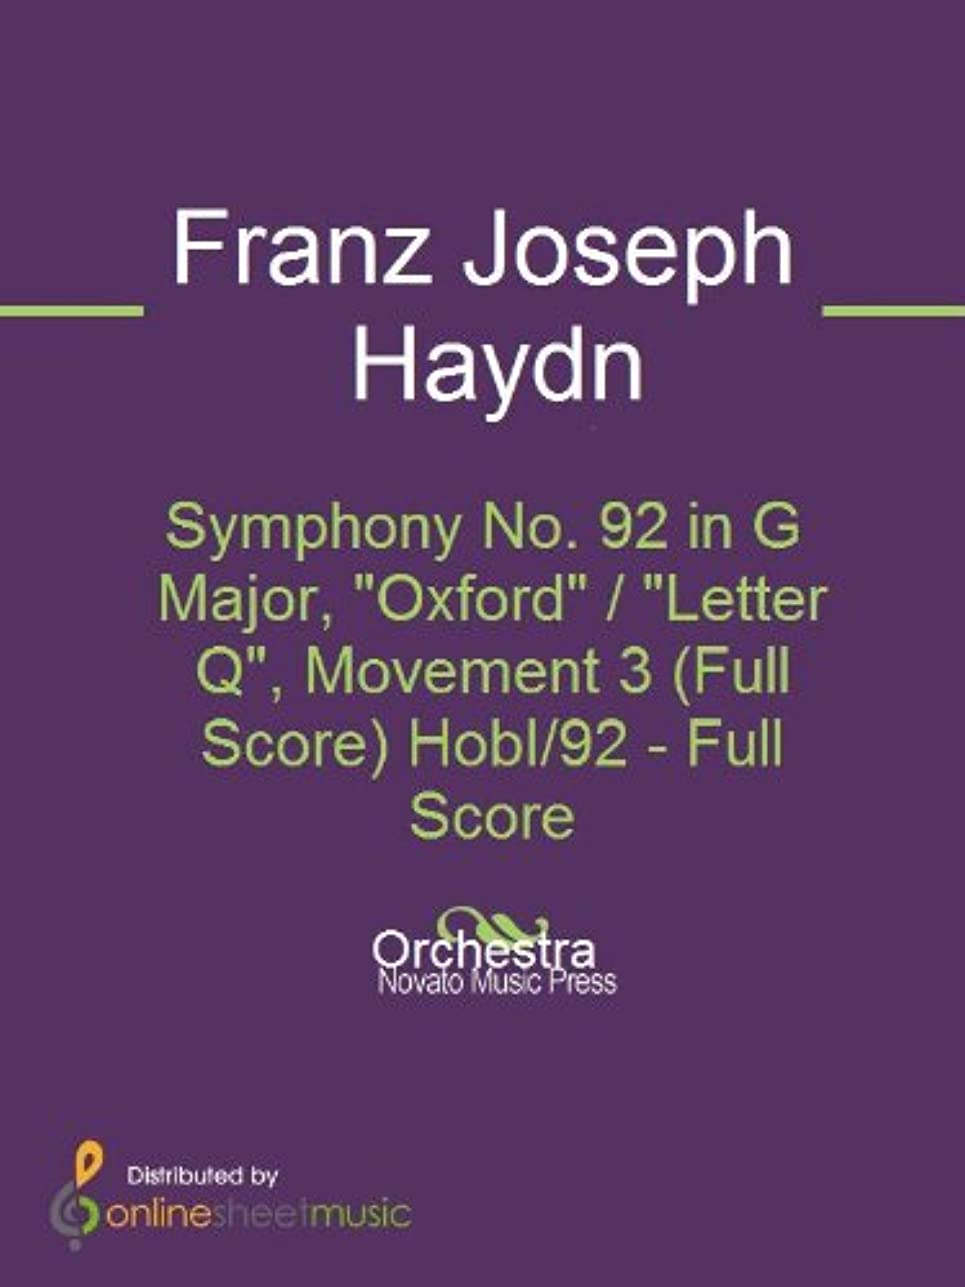 晩ごはんロードブロッキング学者Symphony No. 92 in G Major, Oxford / Letter Q, Movement 3 (Full Score) HobI/92 (English Edition)